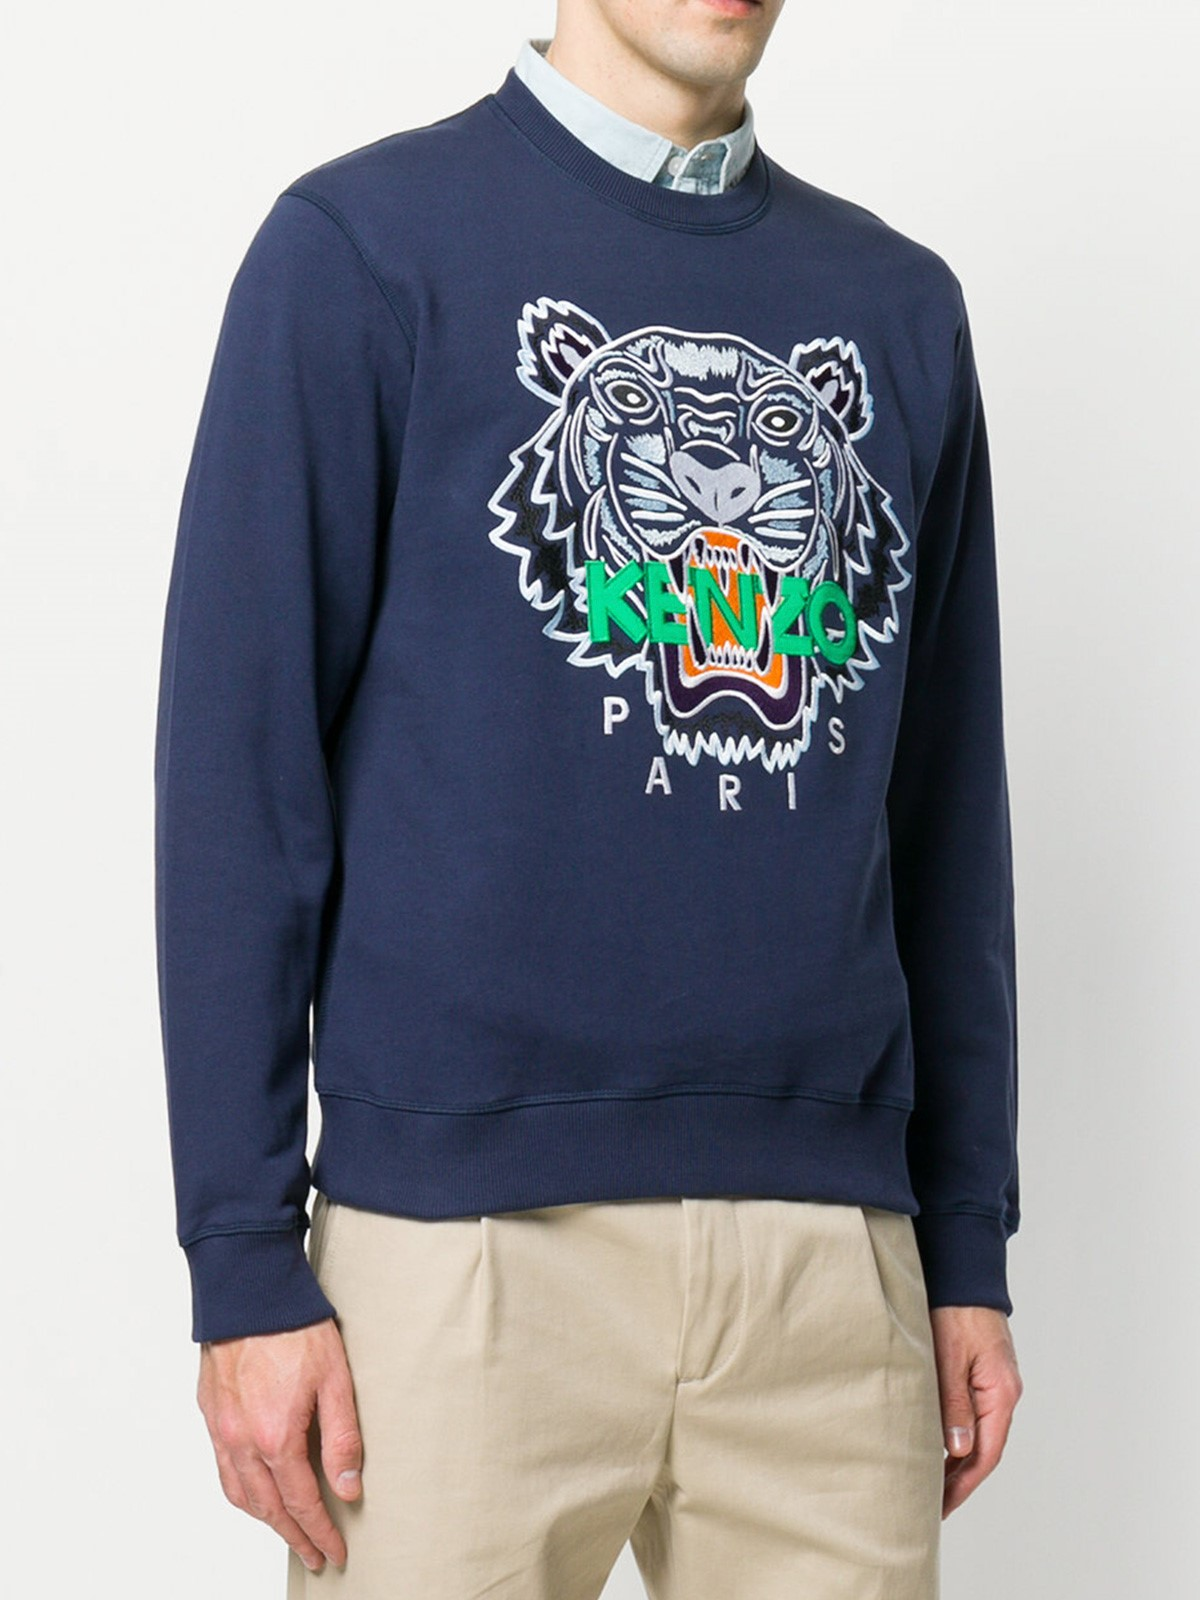 74b2112f90be kenzo TIGER SWEATSHIRT available on montiboutique.com - 22114